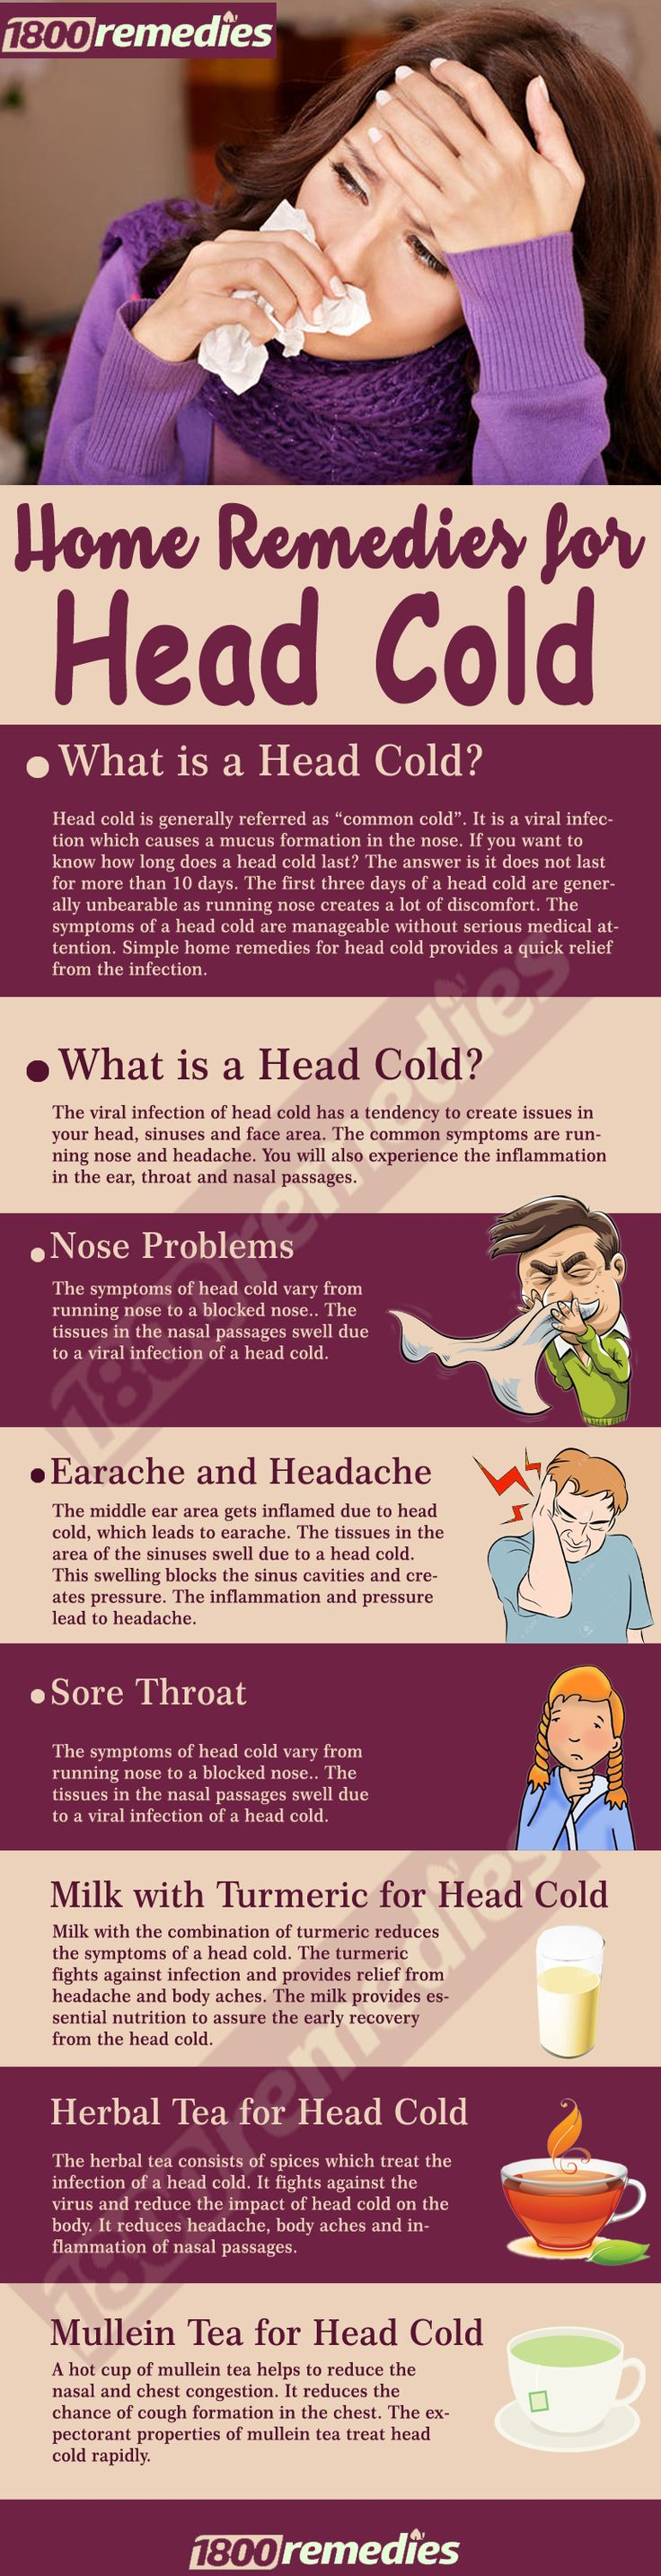 Home Remedies for Head Cold The home remedies for head